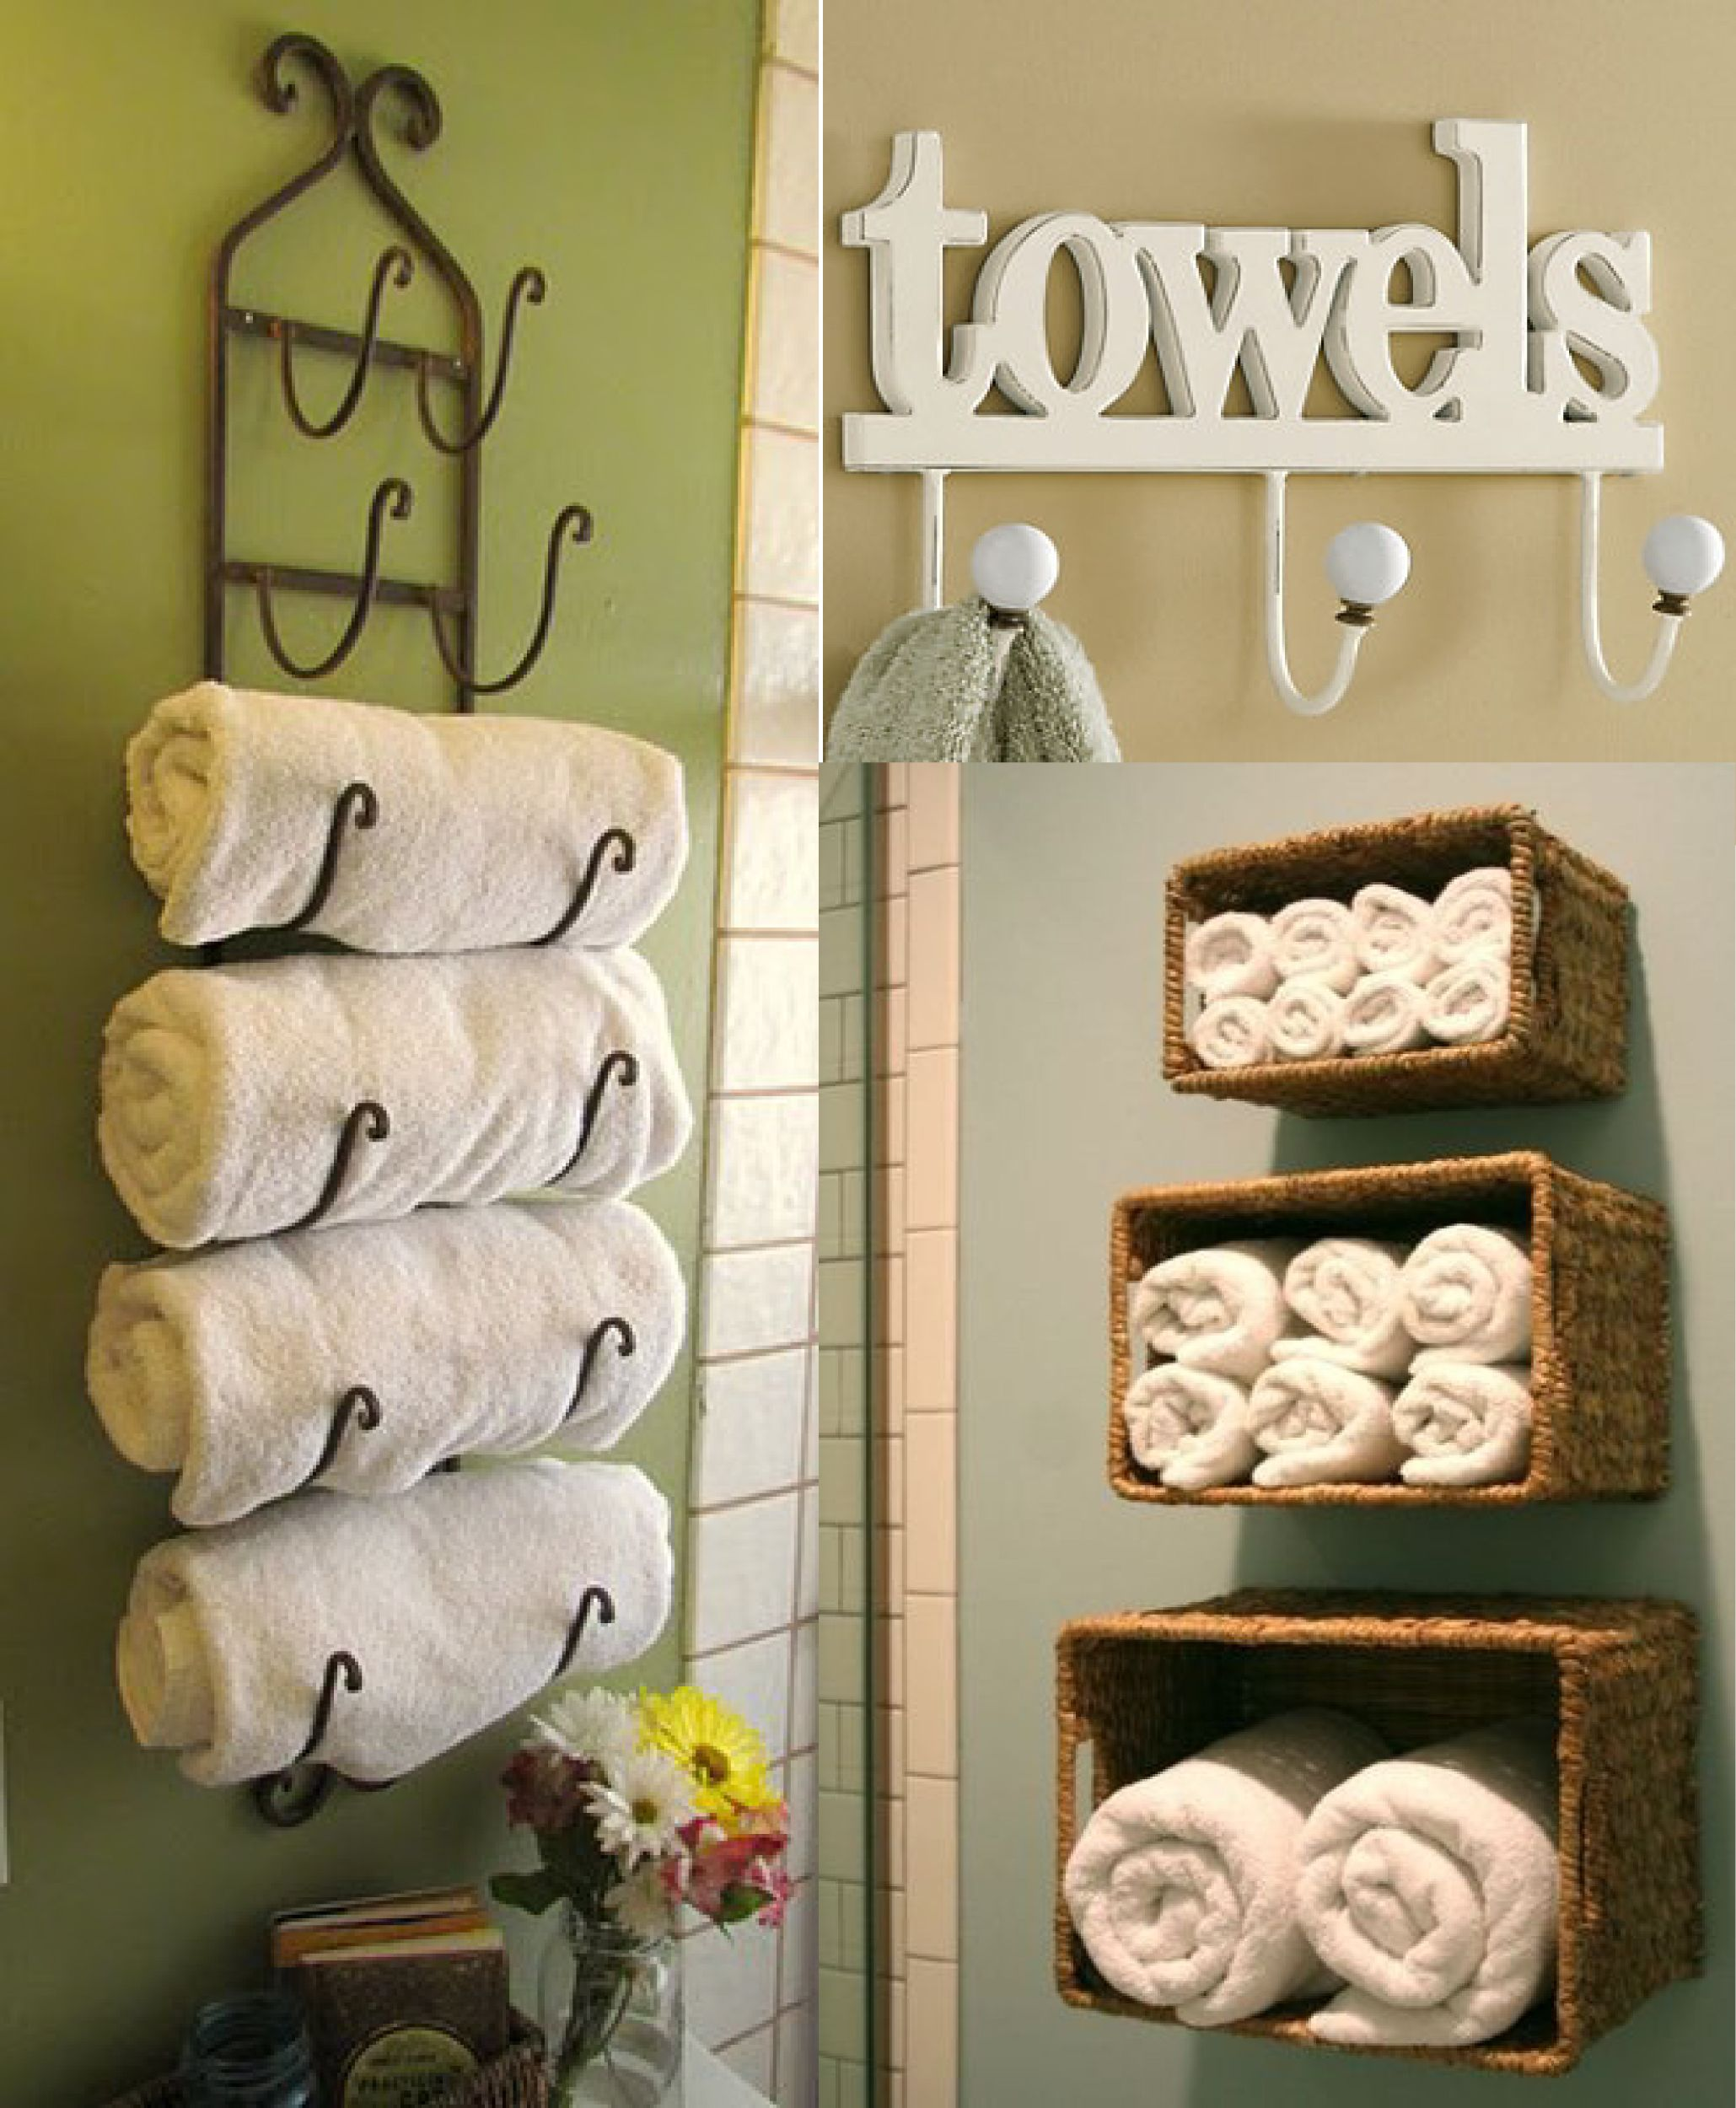 Diy bathroom storage ideas - Bathroom Storage Ideas Pinterest By Shannon Rooks Corporate Office Multifamily Apartment Living